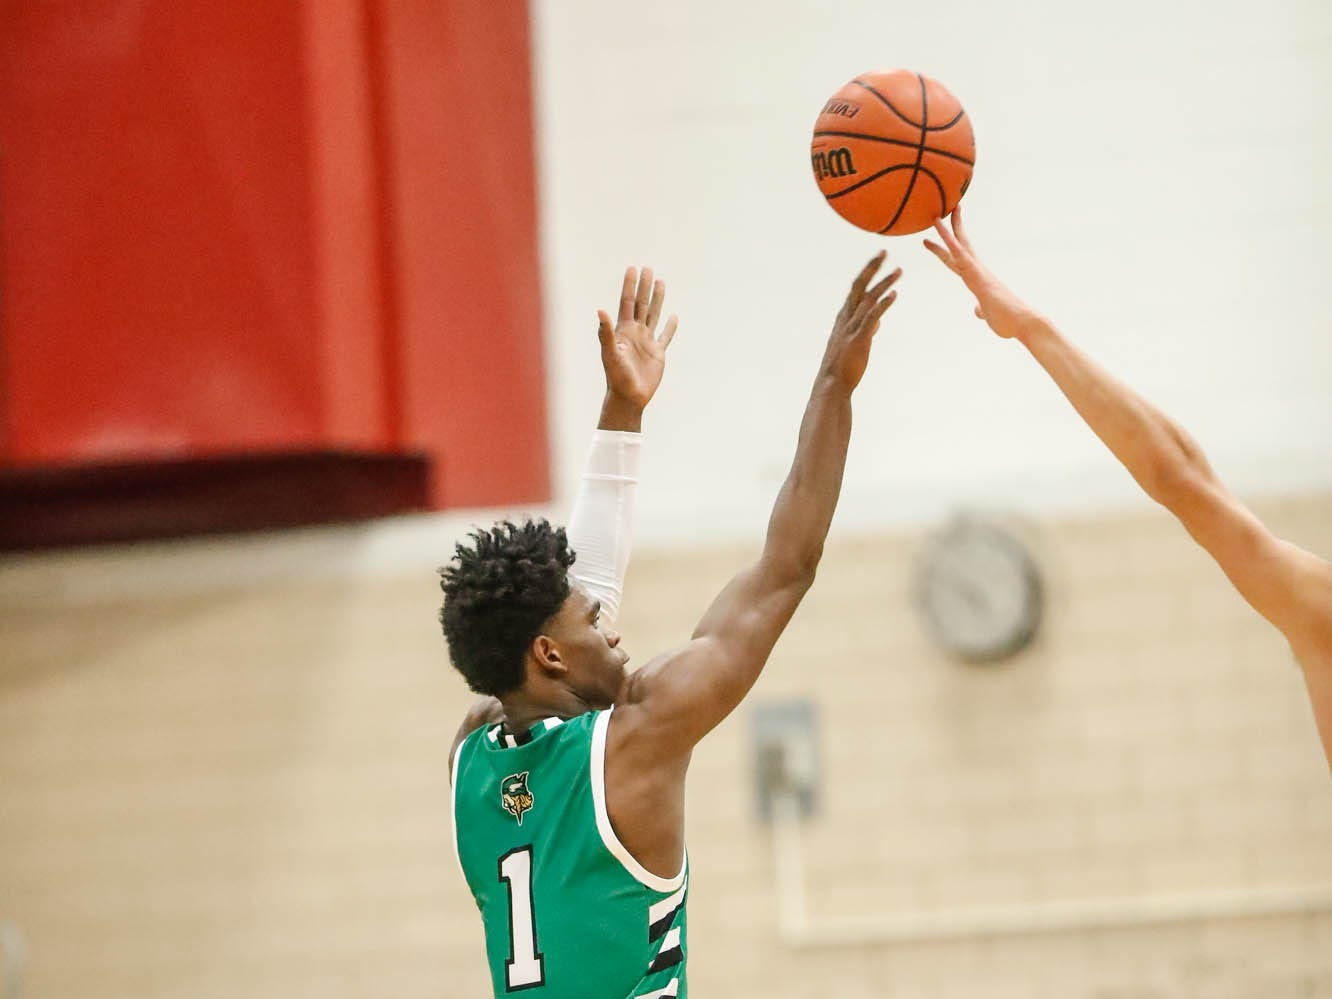 Valparaiso High School's Brandon Newman (1) shoots for the hoop during a game between Zionsville Community High School, and Valparaiso High School, in the 4th Annual Manuel Extravaganza Showcase held at Emmerich Manuel High School in Indianapolis on Saturday, Dec. 22, 2018.